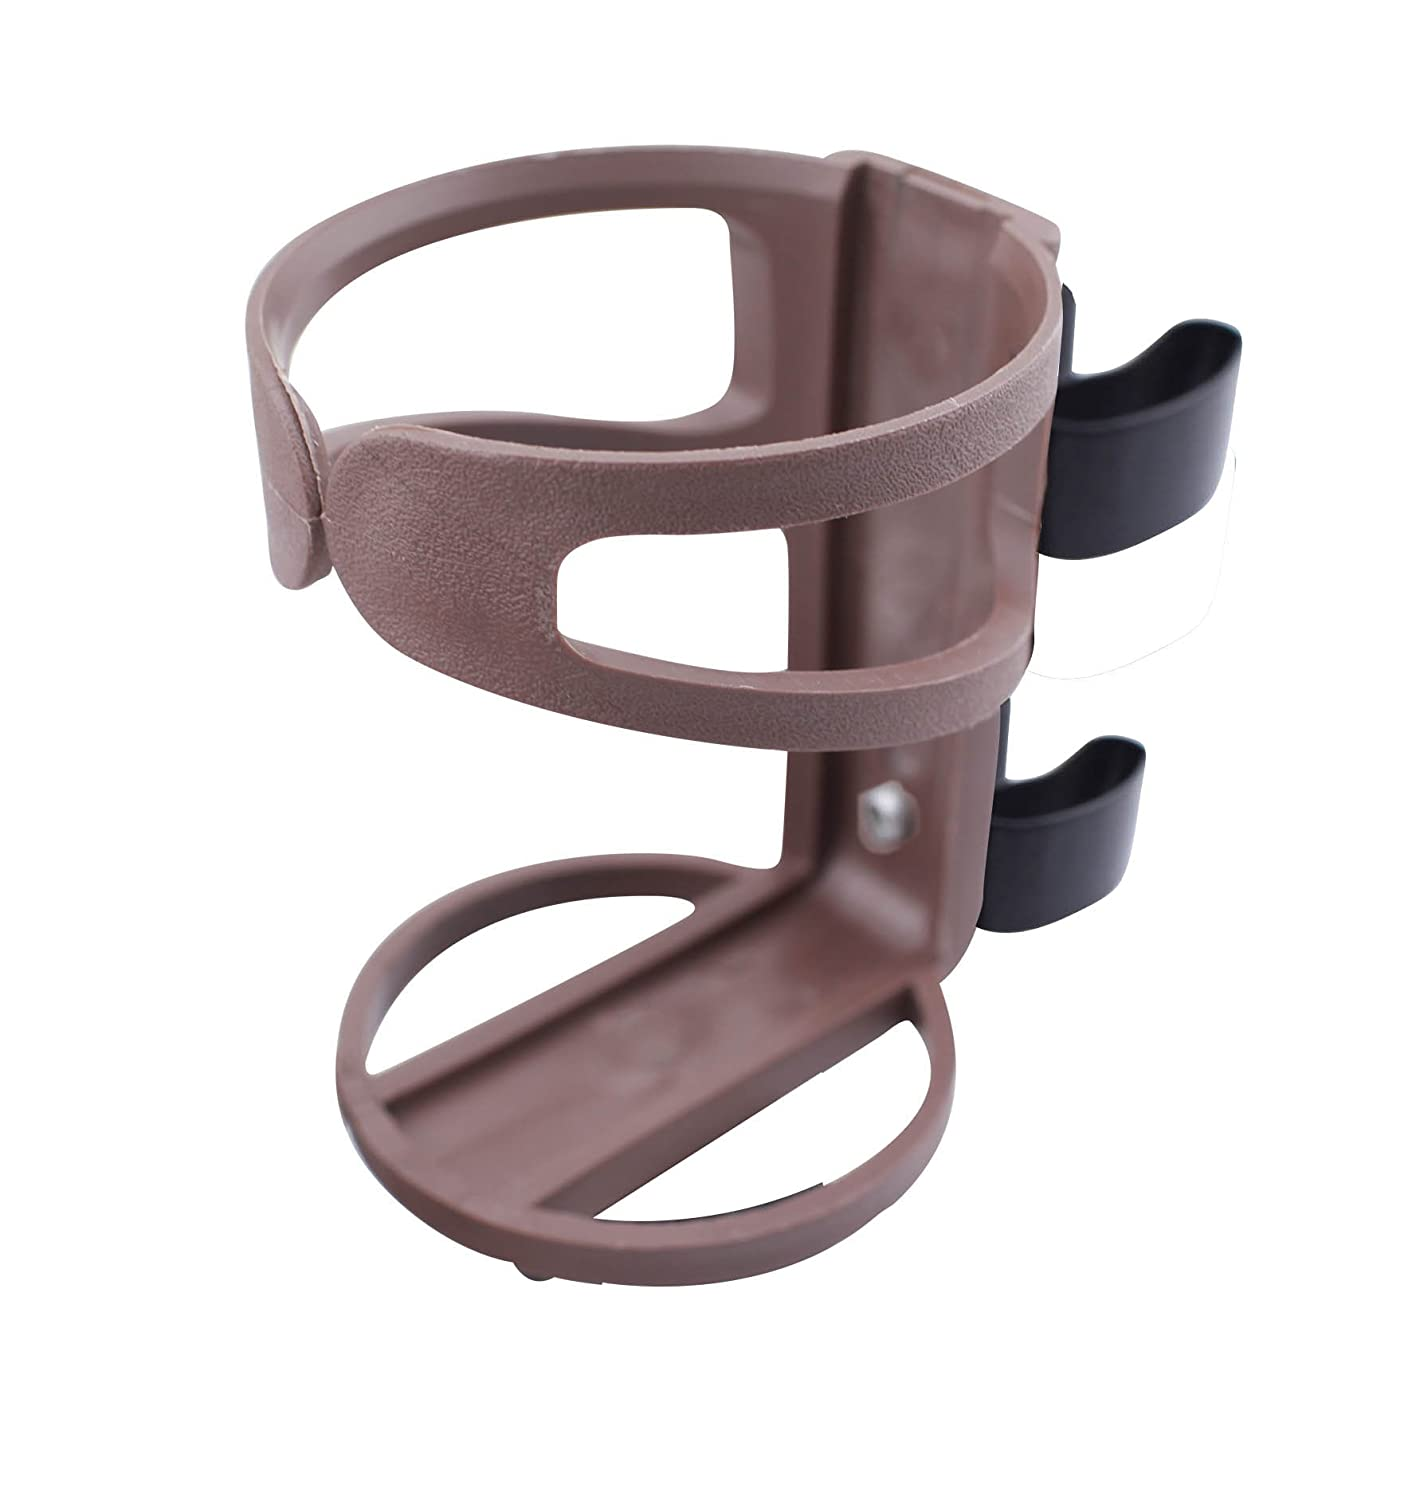 Benovate Universal Wheelchair & Walker & Rollator Beverage Cup Holder - Type II BROWN